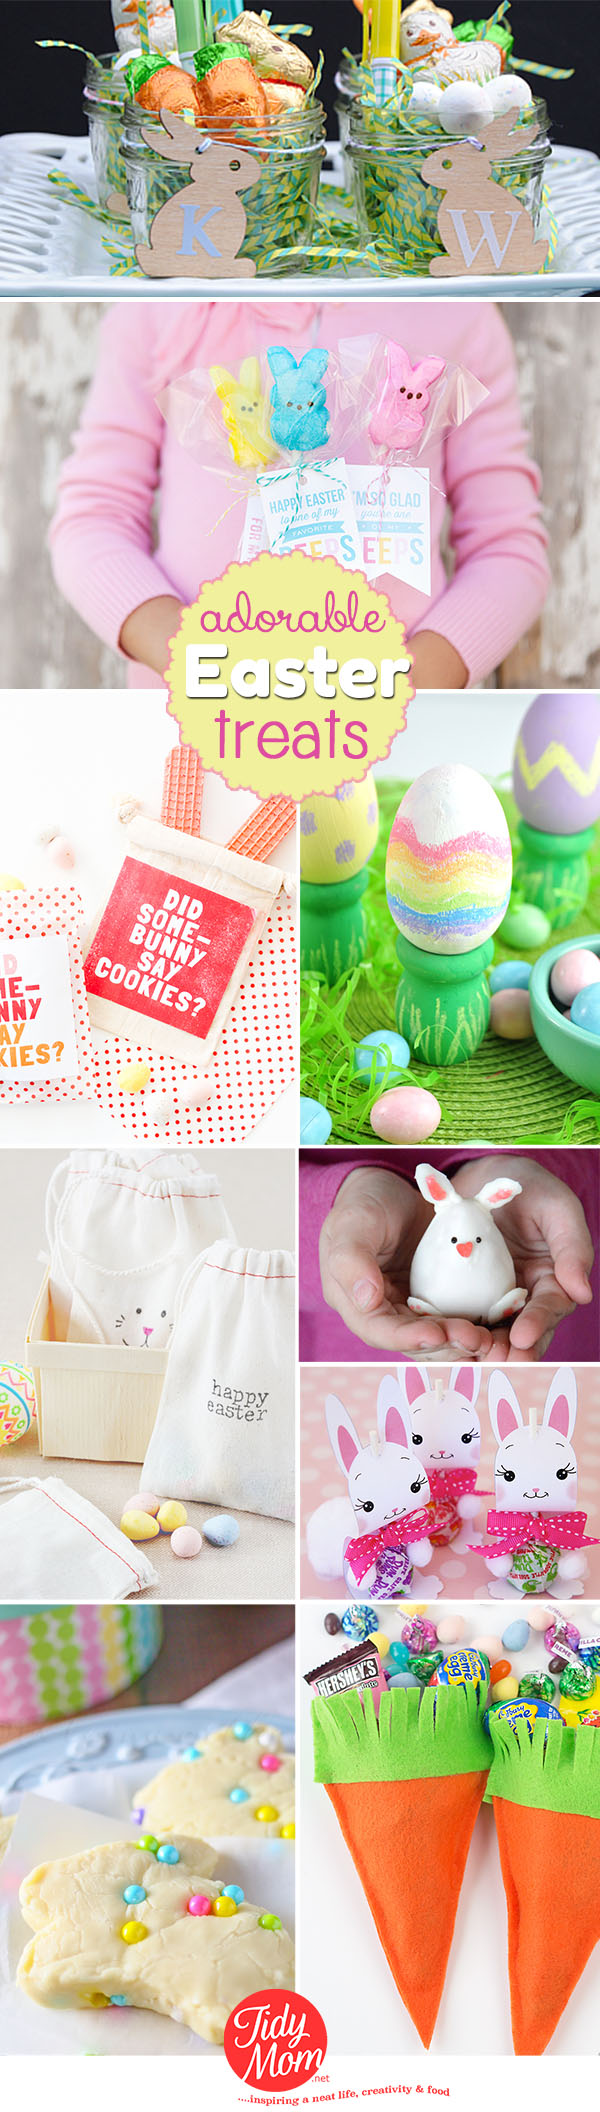 Adorable Easter treats and gift ideas to make at TidyMom.net